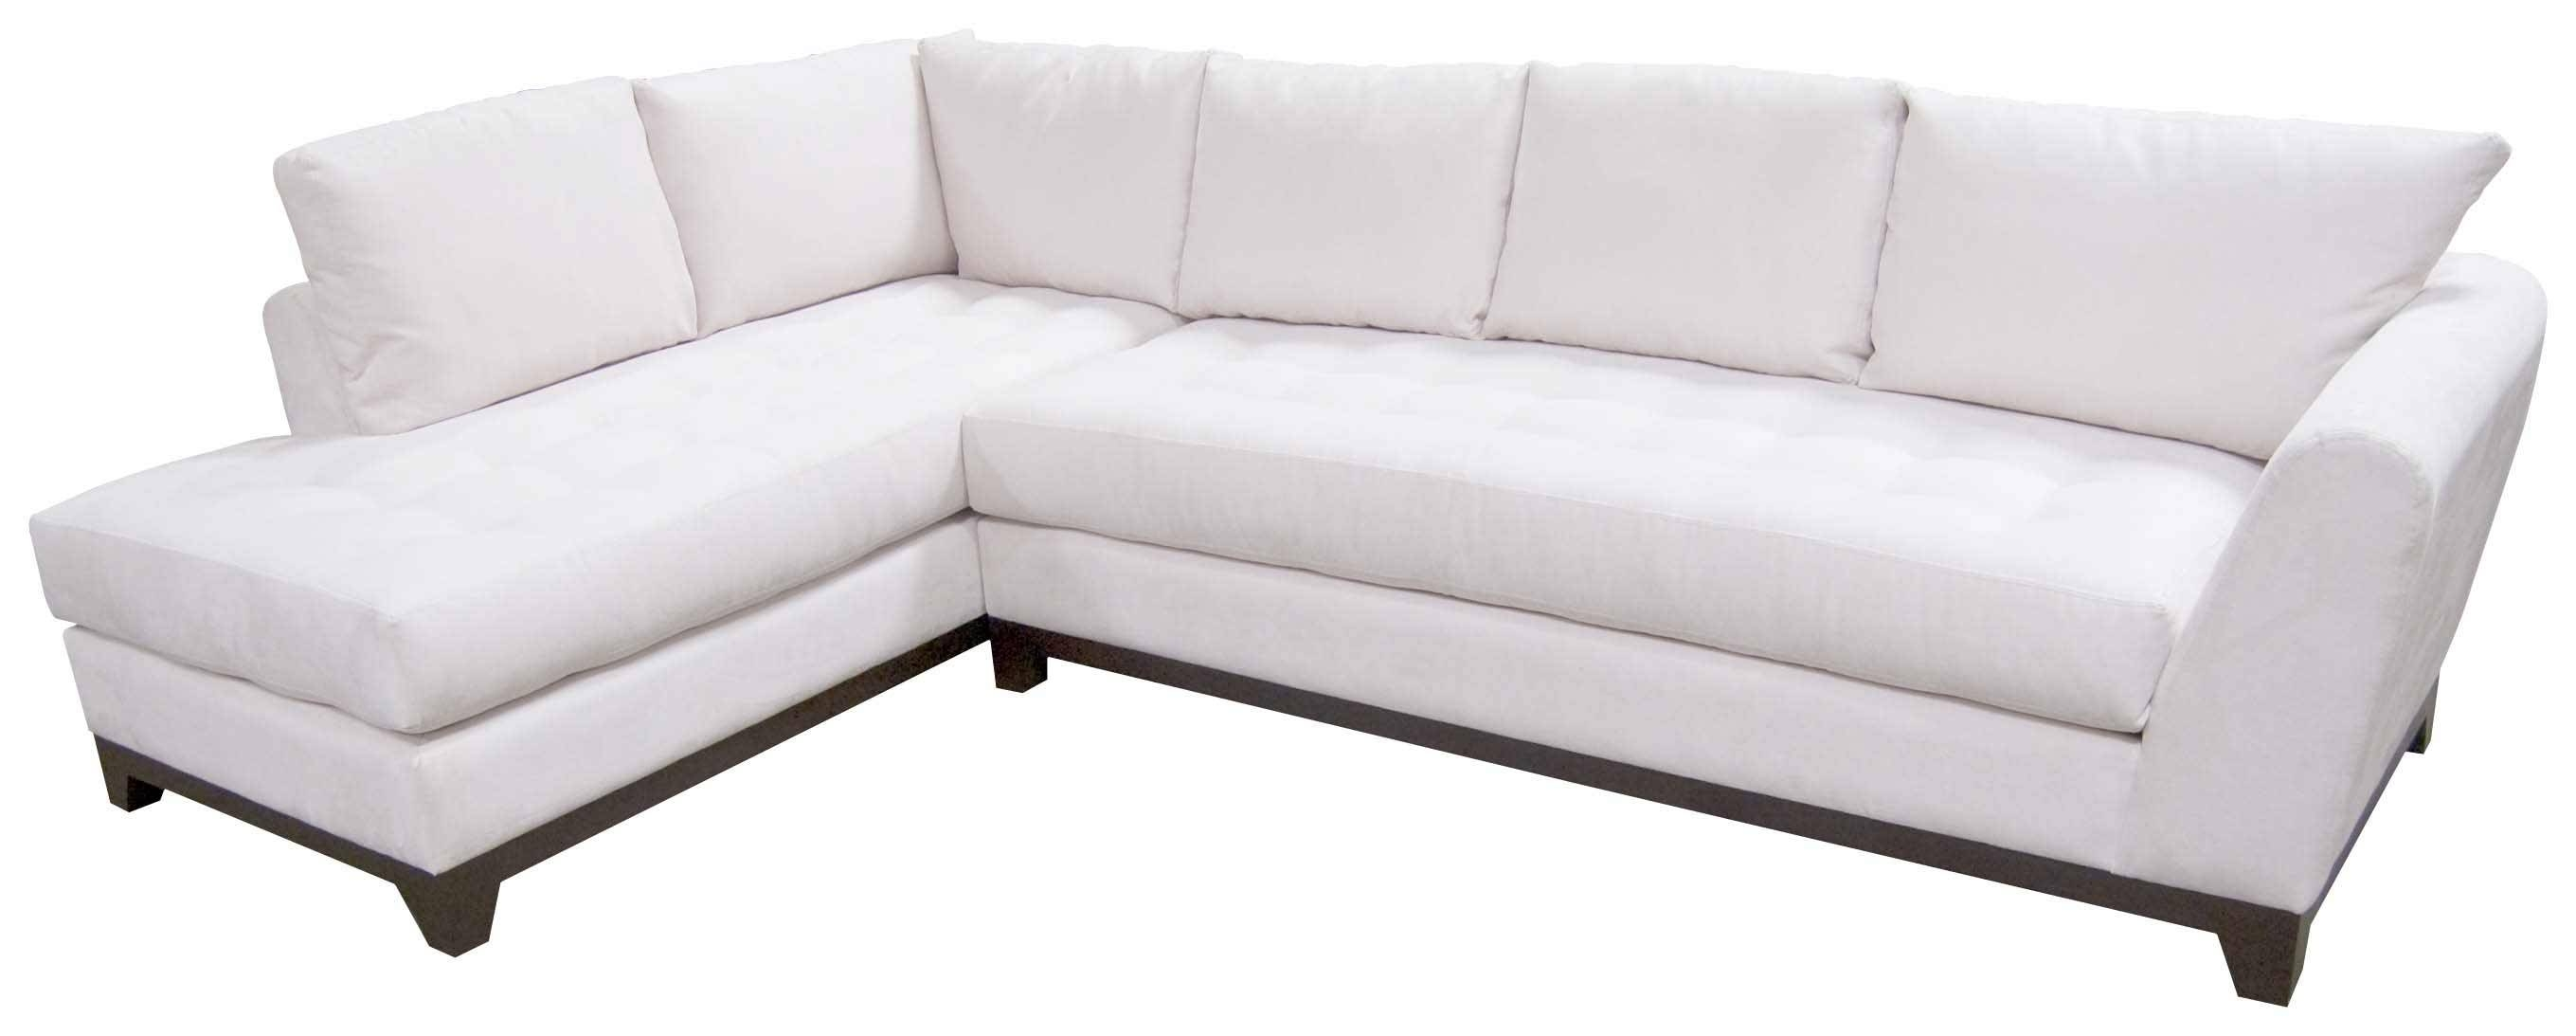 Affordable Sofa Bed Toronto